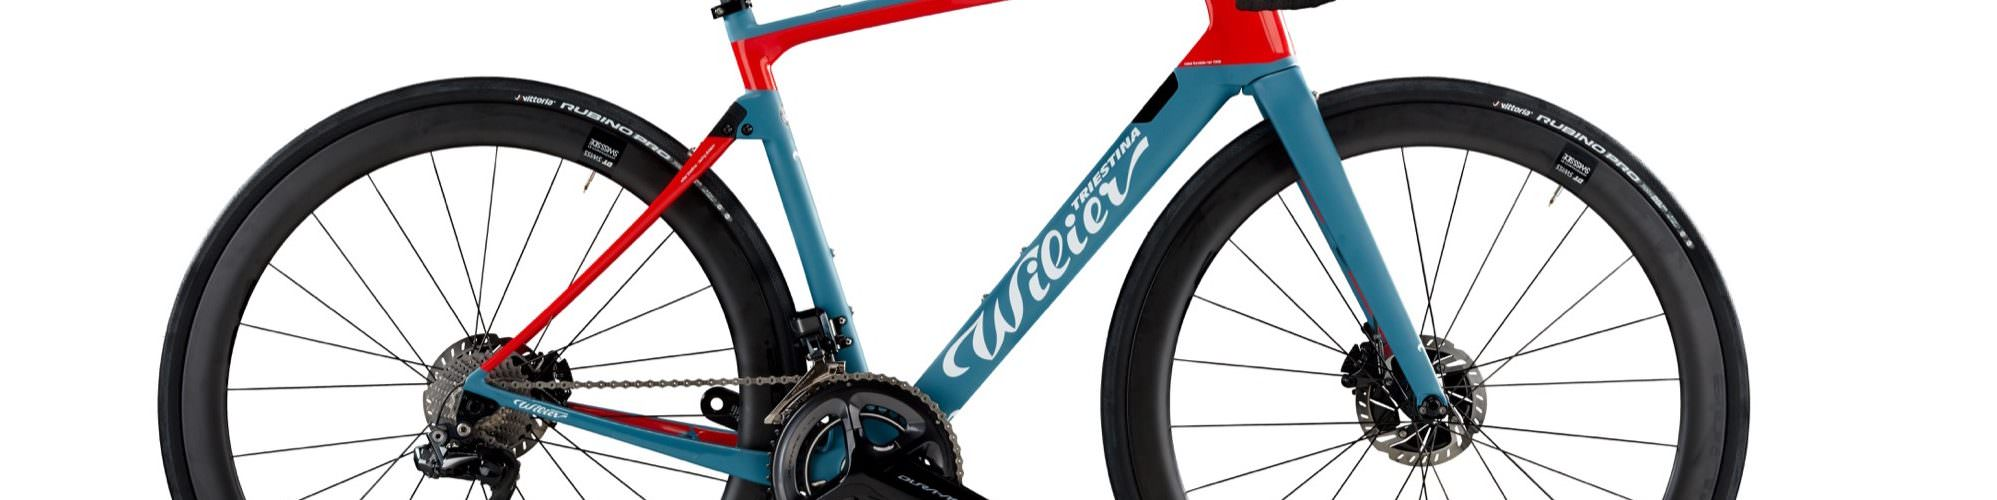 724fd6a160f First Look: Wilier Cento10 NDR – rear suspension on a road bike ...